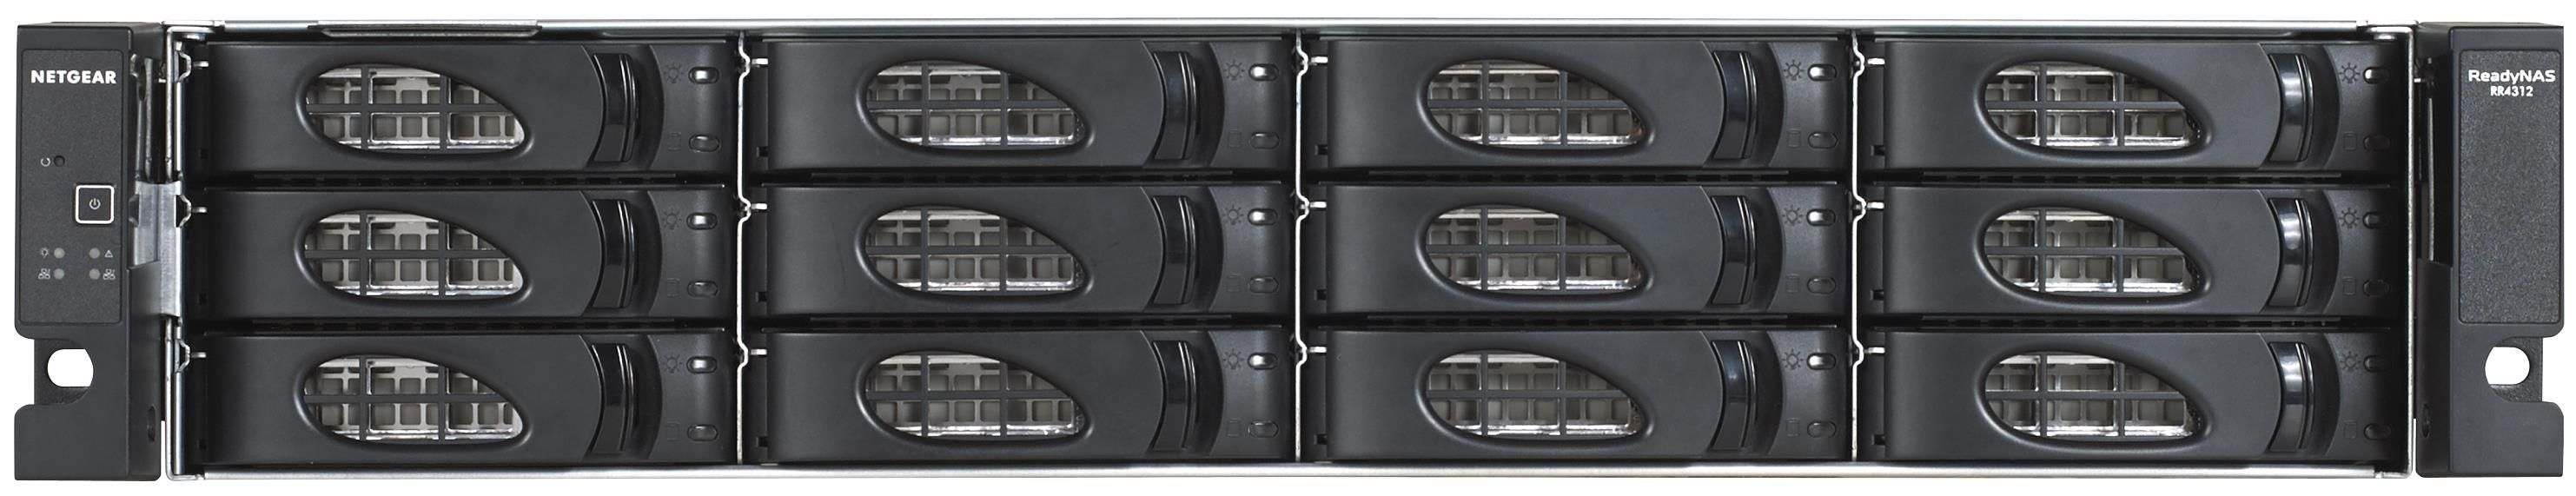 Netgear ReadyNAS 3312 (12 Bay) Rackmount Network Attached Storage with 12 x (4TB) Enterprise Drives